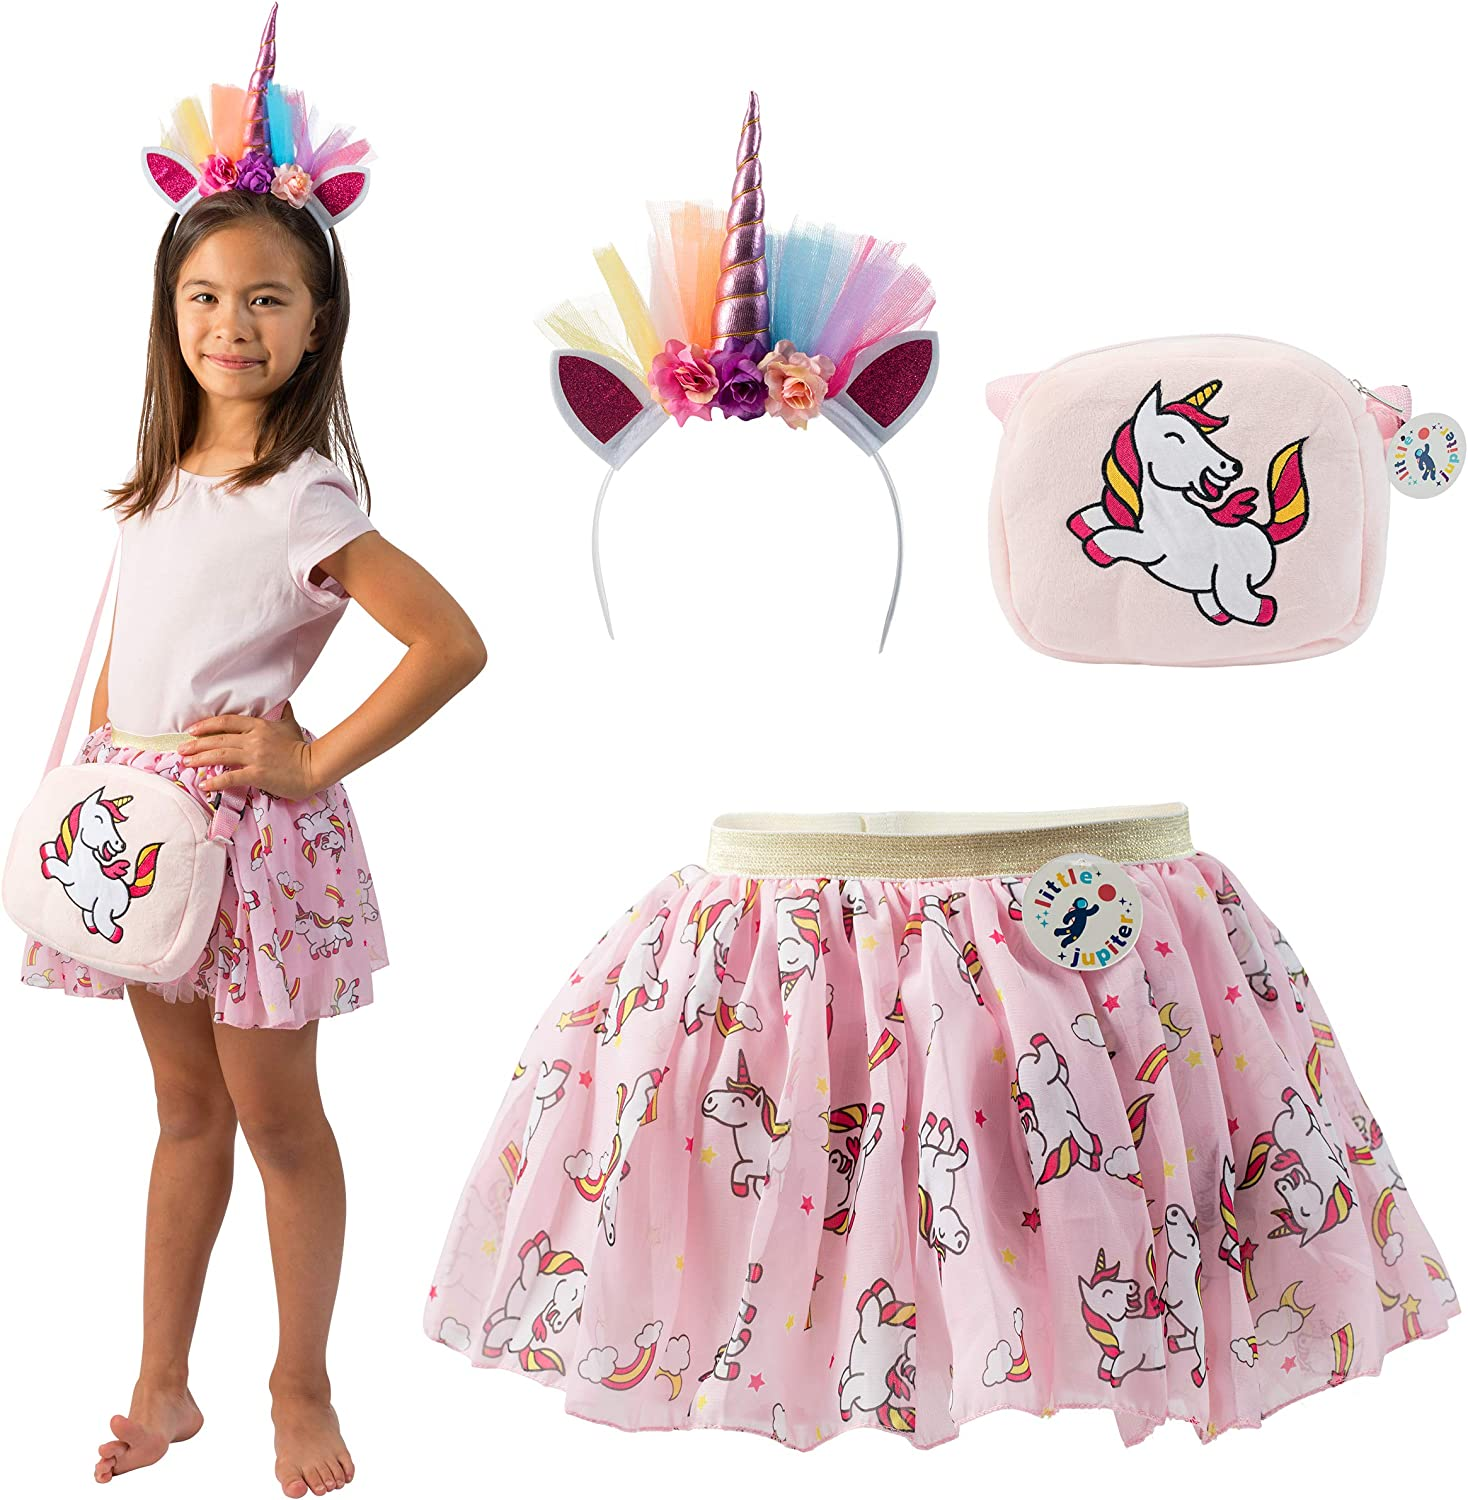 Child Girls Cute Queen of Hearts Costume Tutu Sash and Crown Fancy Dress NEW